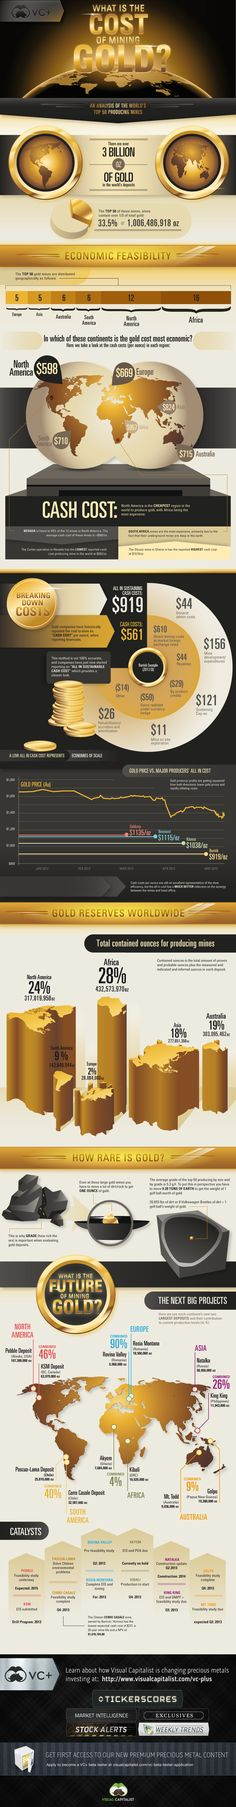 What is the Cost of Mining Gold?